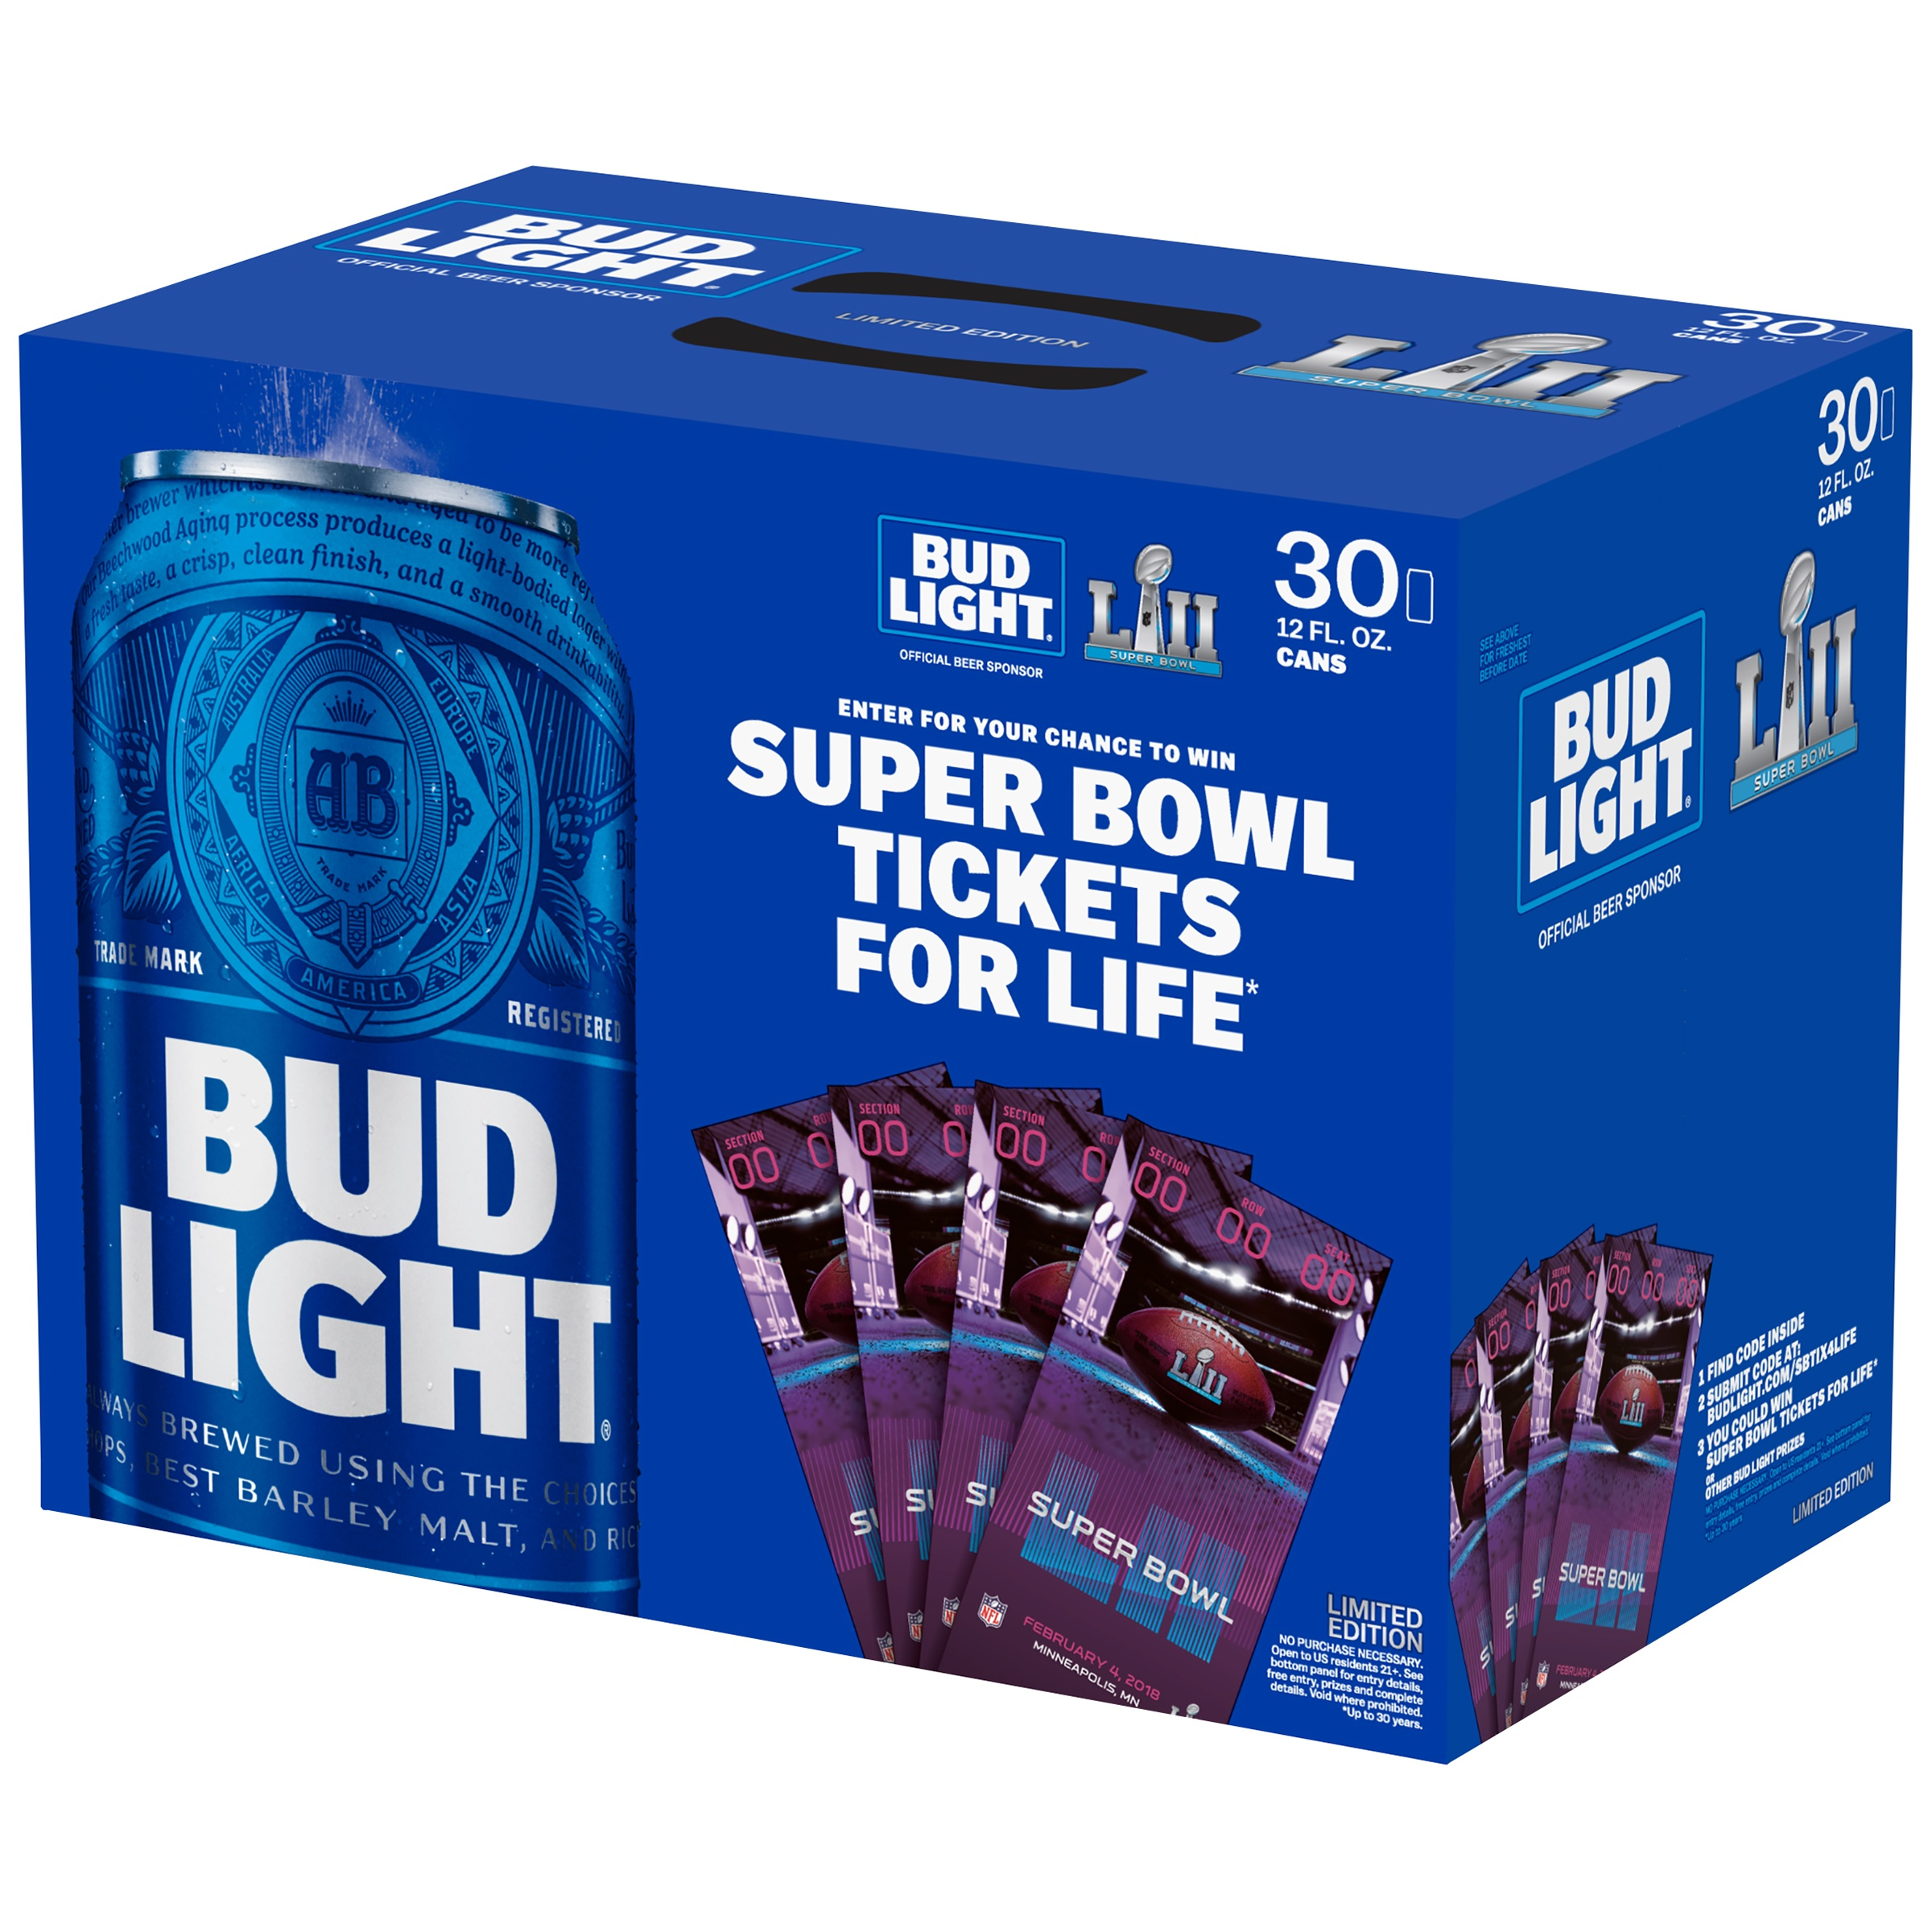 bud light expiration dates